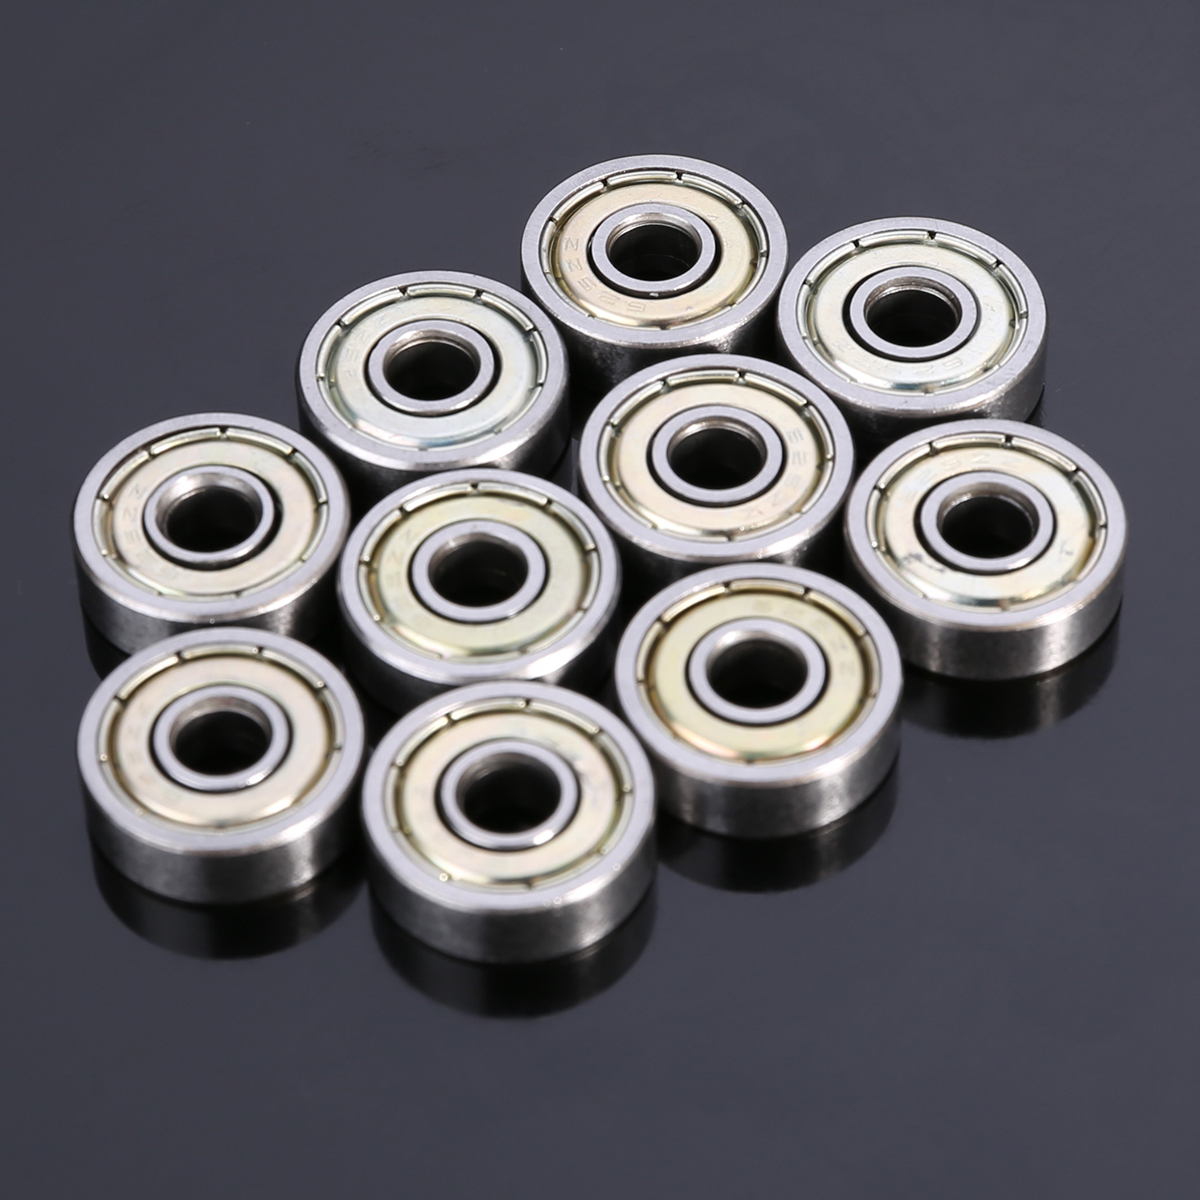 10pcs High Quality Single Row Deep Groove Ball Bearings Carbon Steel Radial Metal <font><b>625ZZ</b></font> Ball Bearing 5*16*5mm Mayitr image